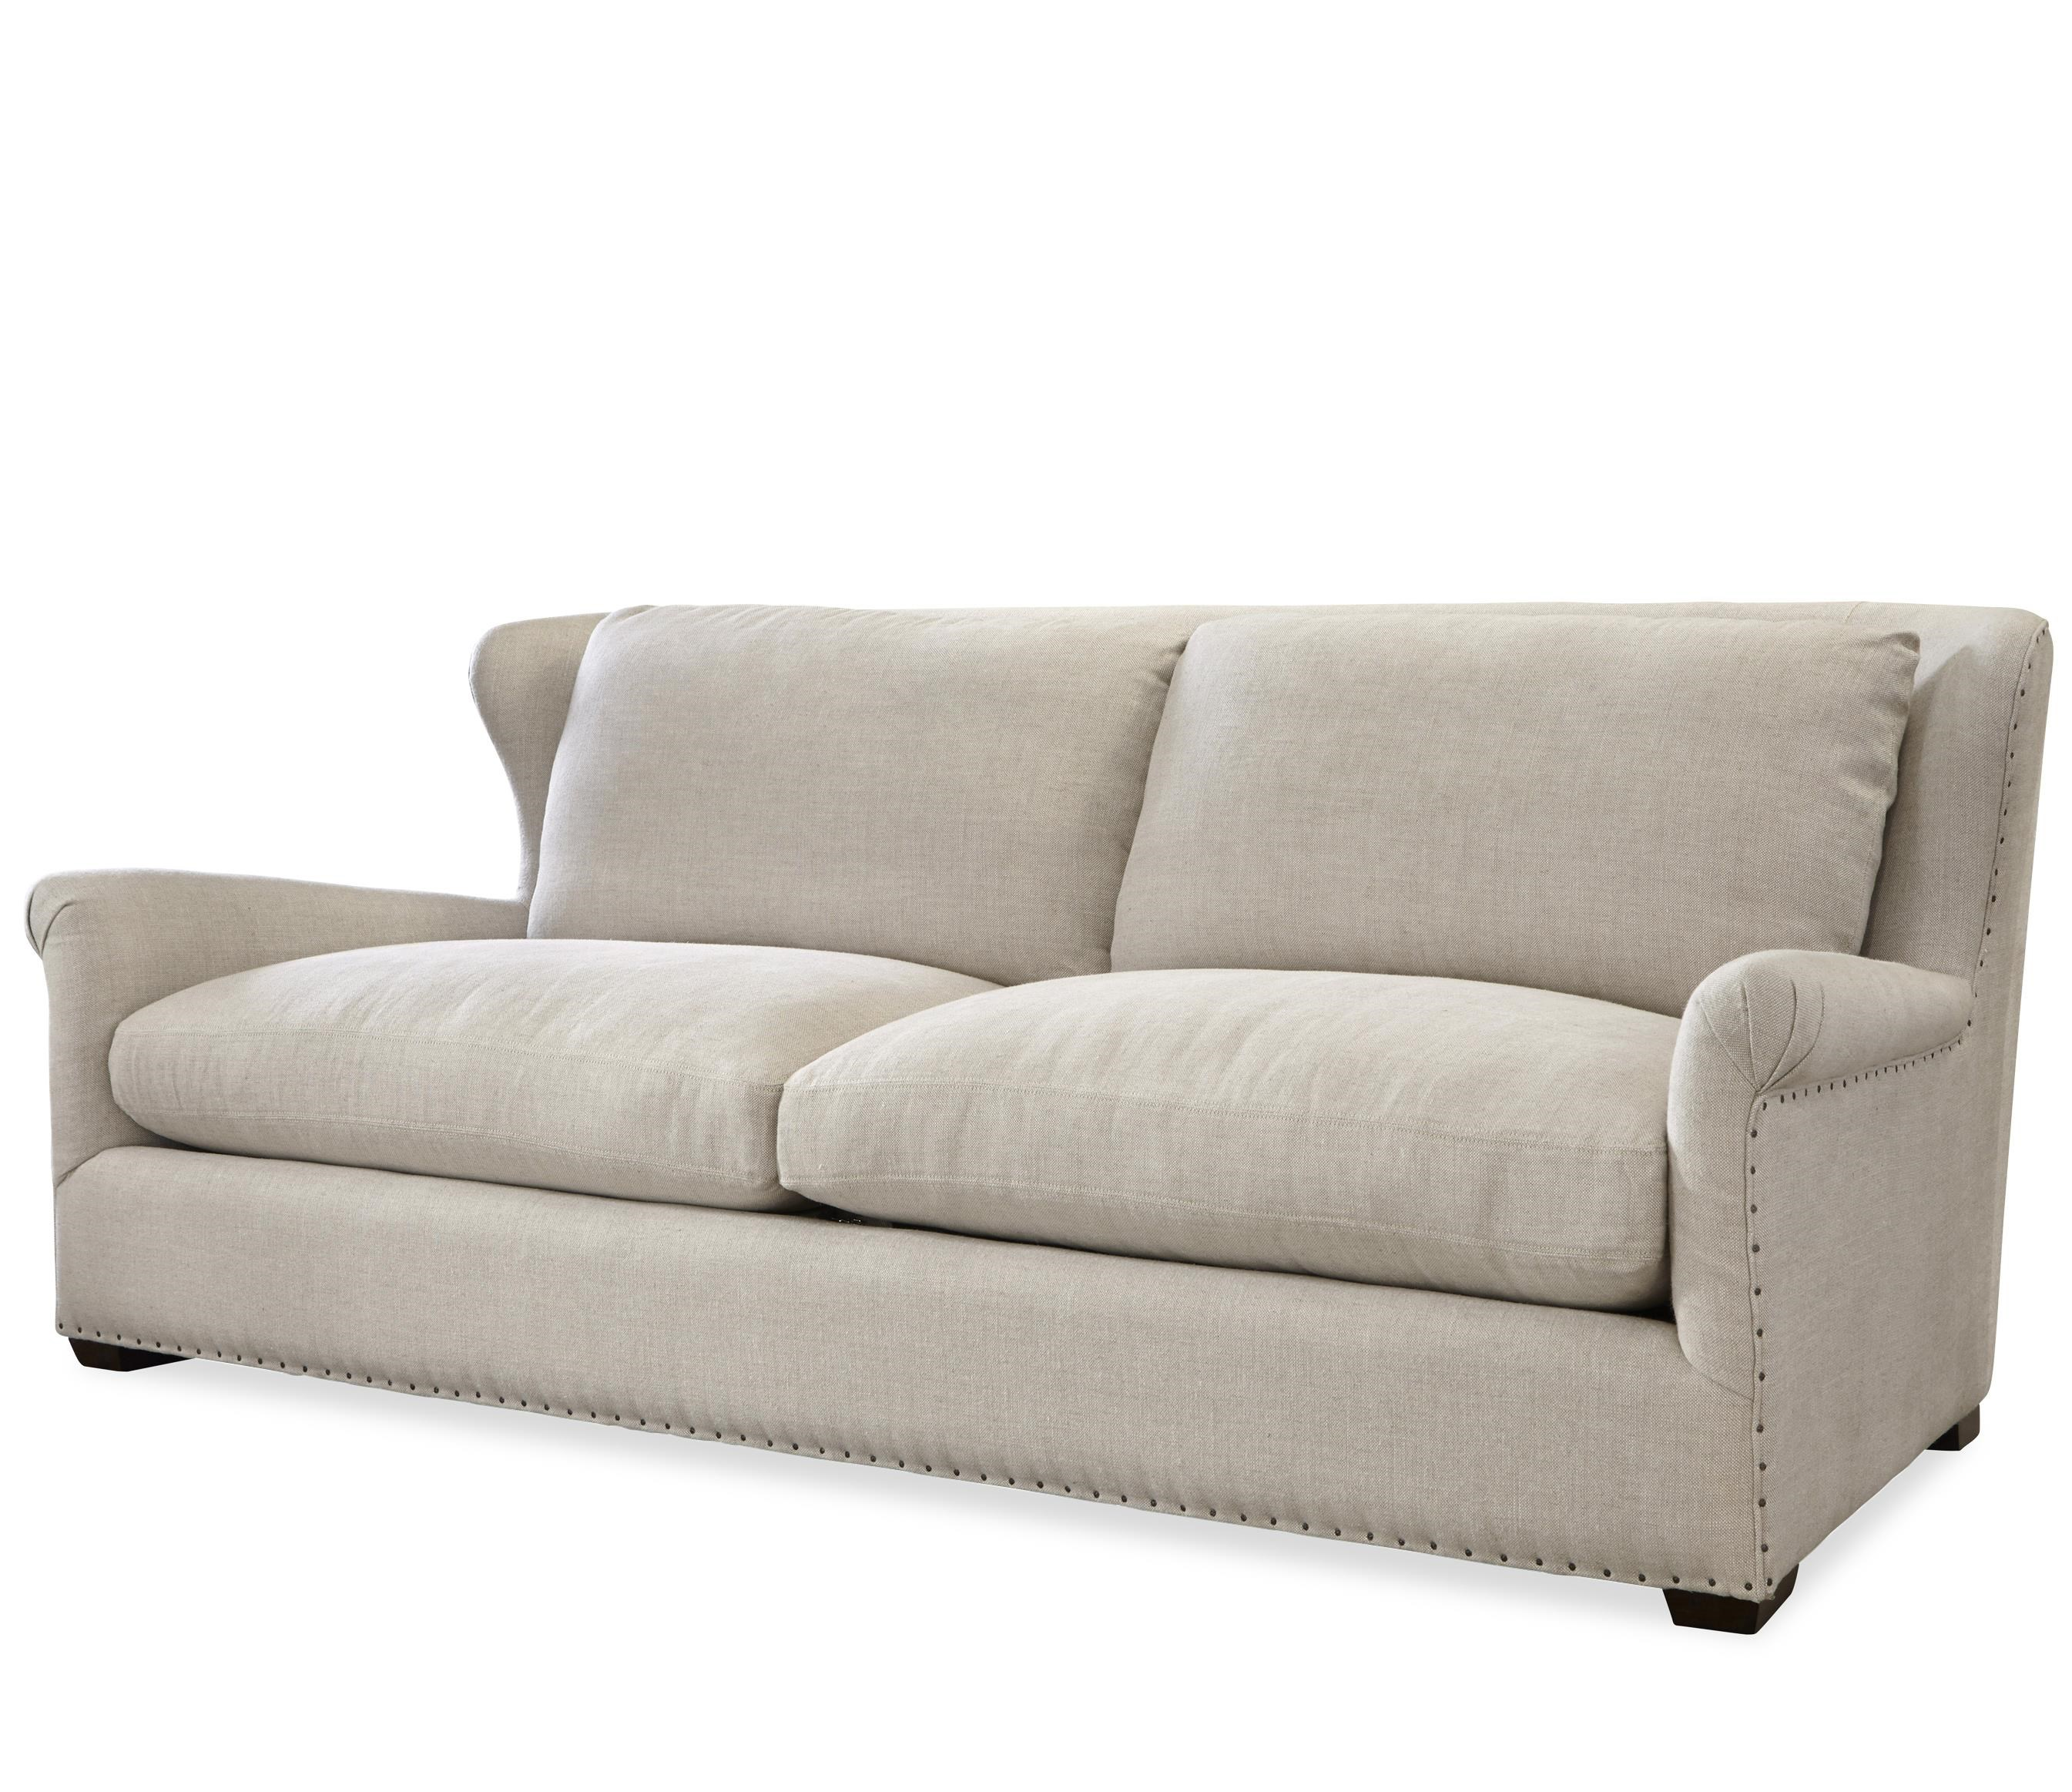 OCONNOR DESIGNS Haven Transitional Sofa With Rolled Arms And Spaced Nailhead